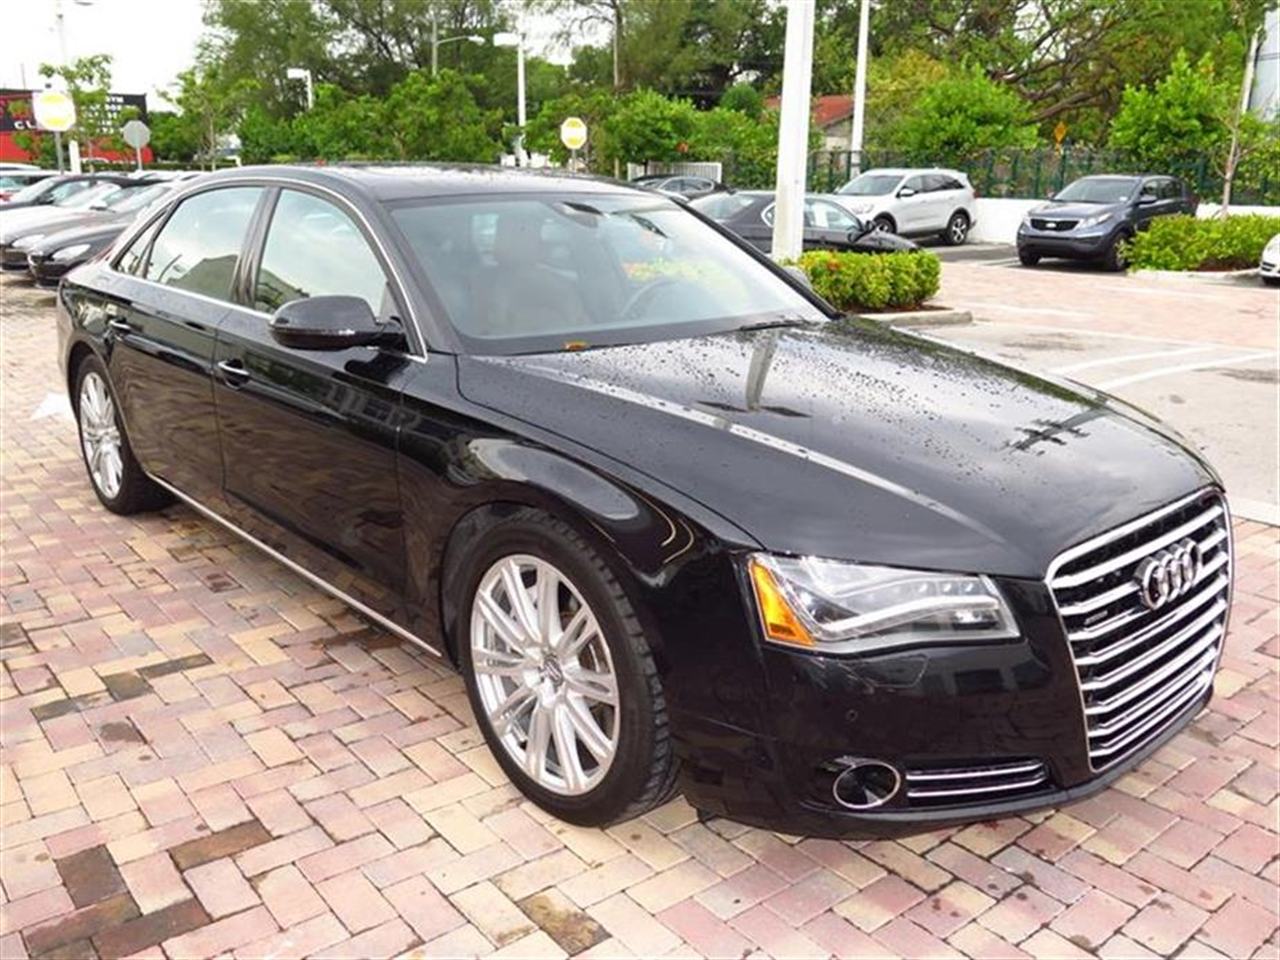 2011 AUDI A8 4dr Sdn 38446 miles 4 assist handles wslow retraction feature 4 tie-down eyele